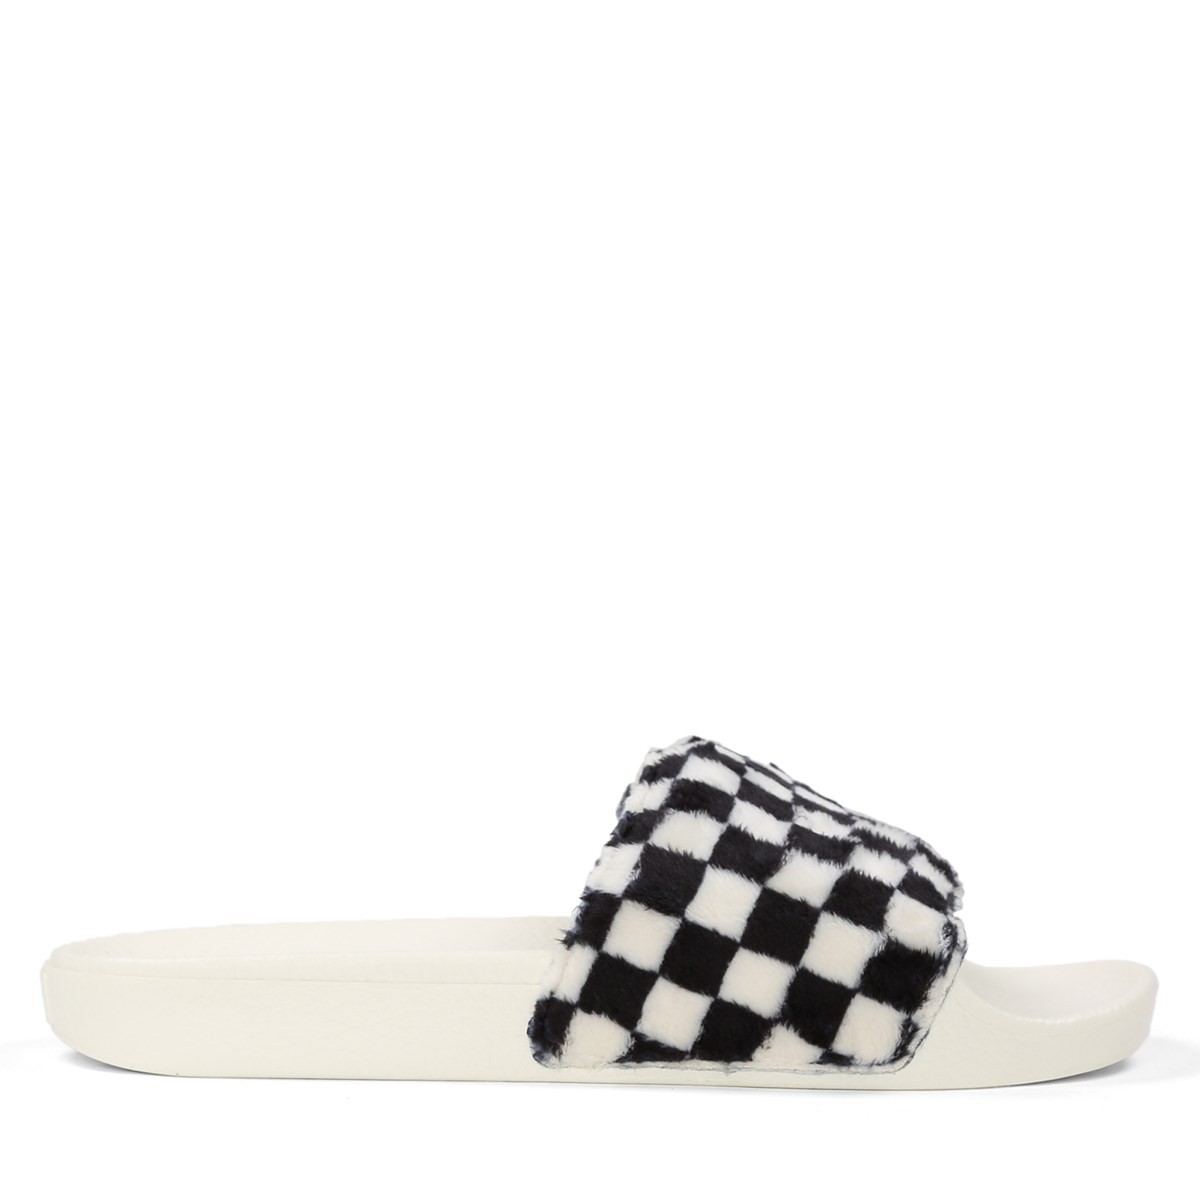 8ea65d7d5b5 Women s Sherpa Checkerboard Slide-On. Previous. default view ...